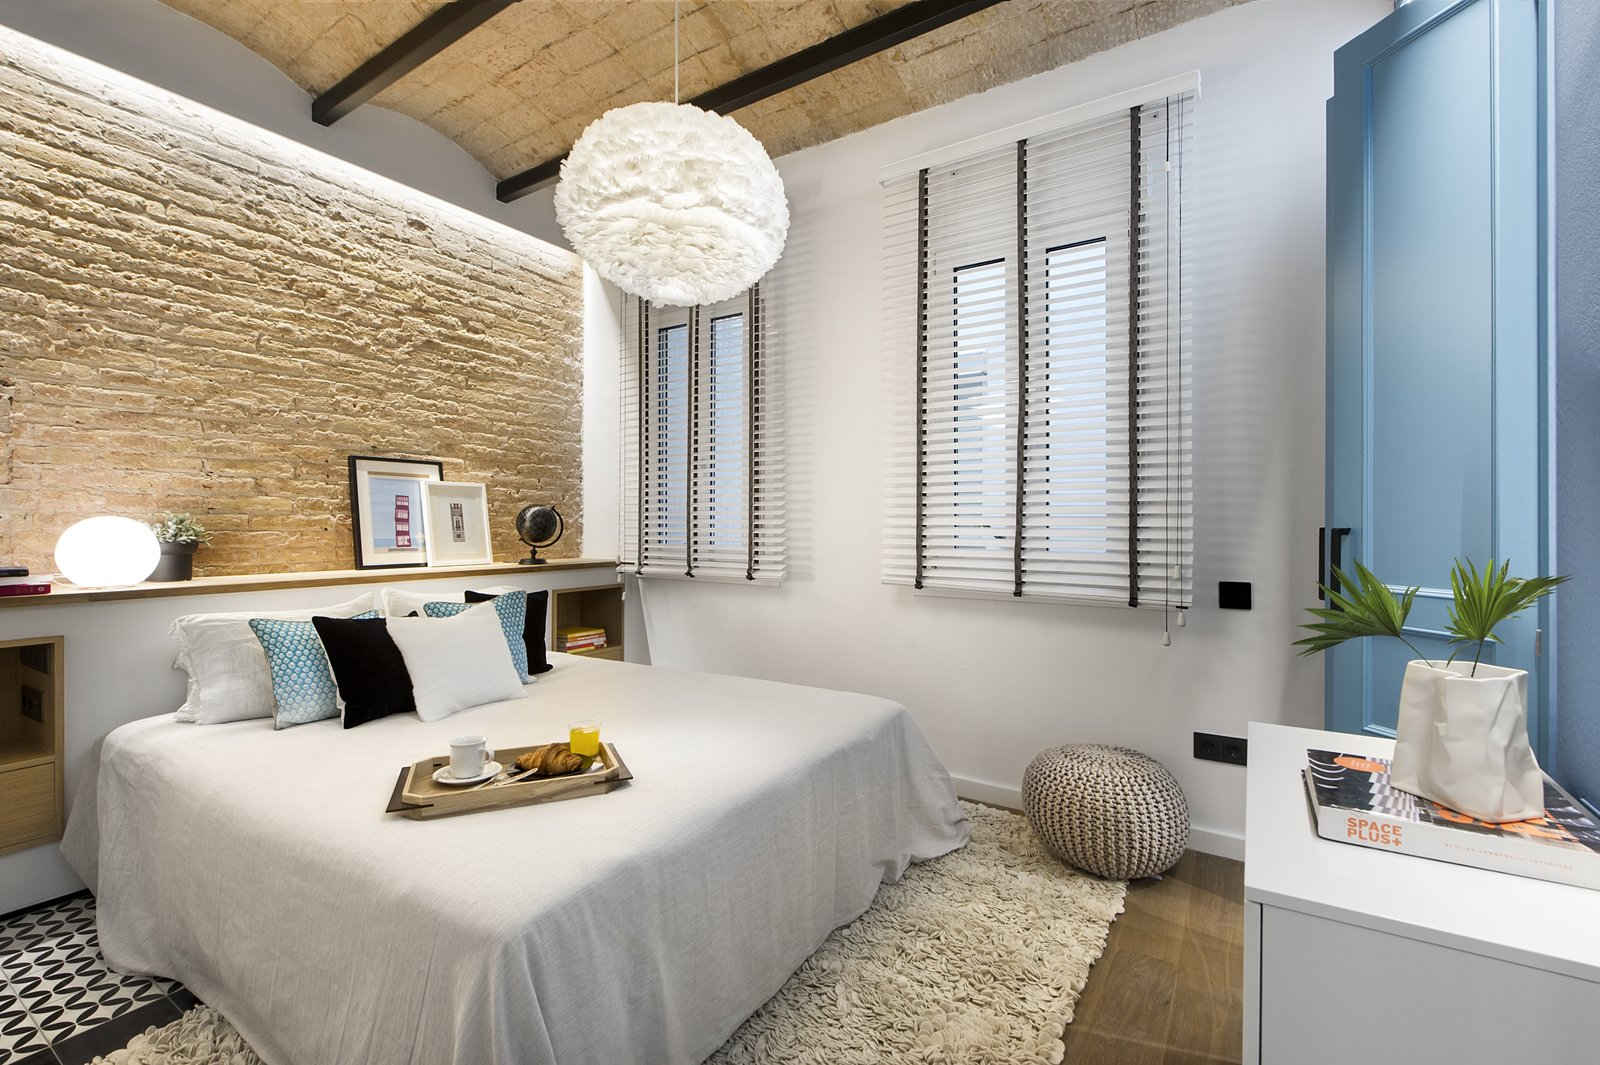 Bedroom, Bed, Dresser, Storage, Pendant Lighting, Medium Hardwood Floor, and Ceramic Tile Floor  Best Photos from A Smart Layout Maximizes Space in This Compact Urban Beach Apartment in Barcelona